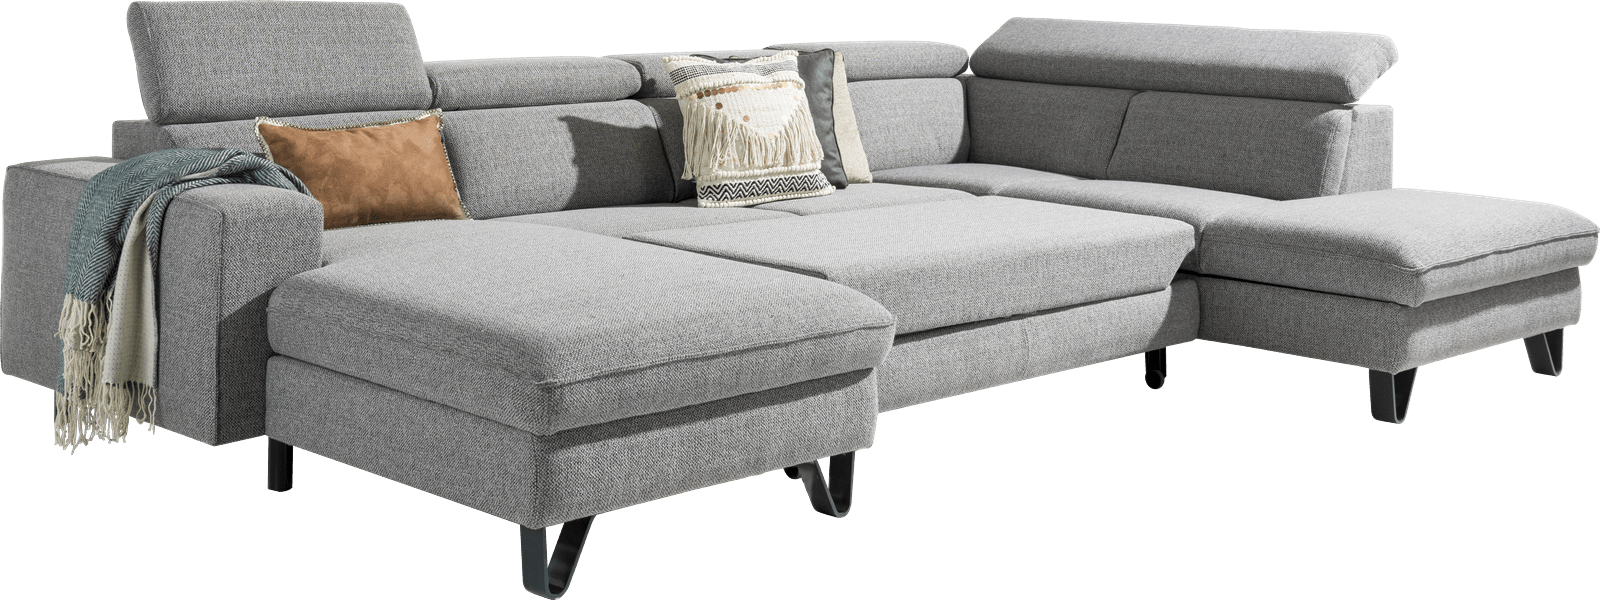 XOOON - Urban - Sofas - Eckcouch Urban